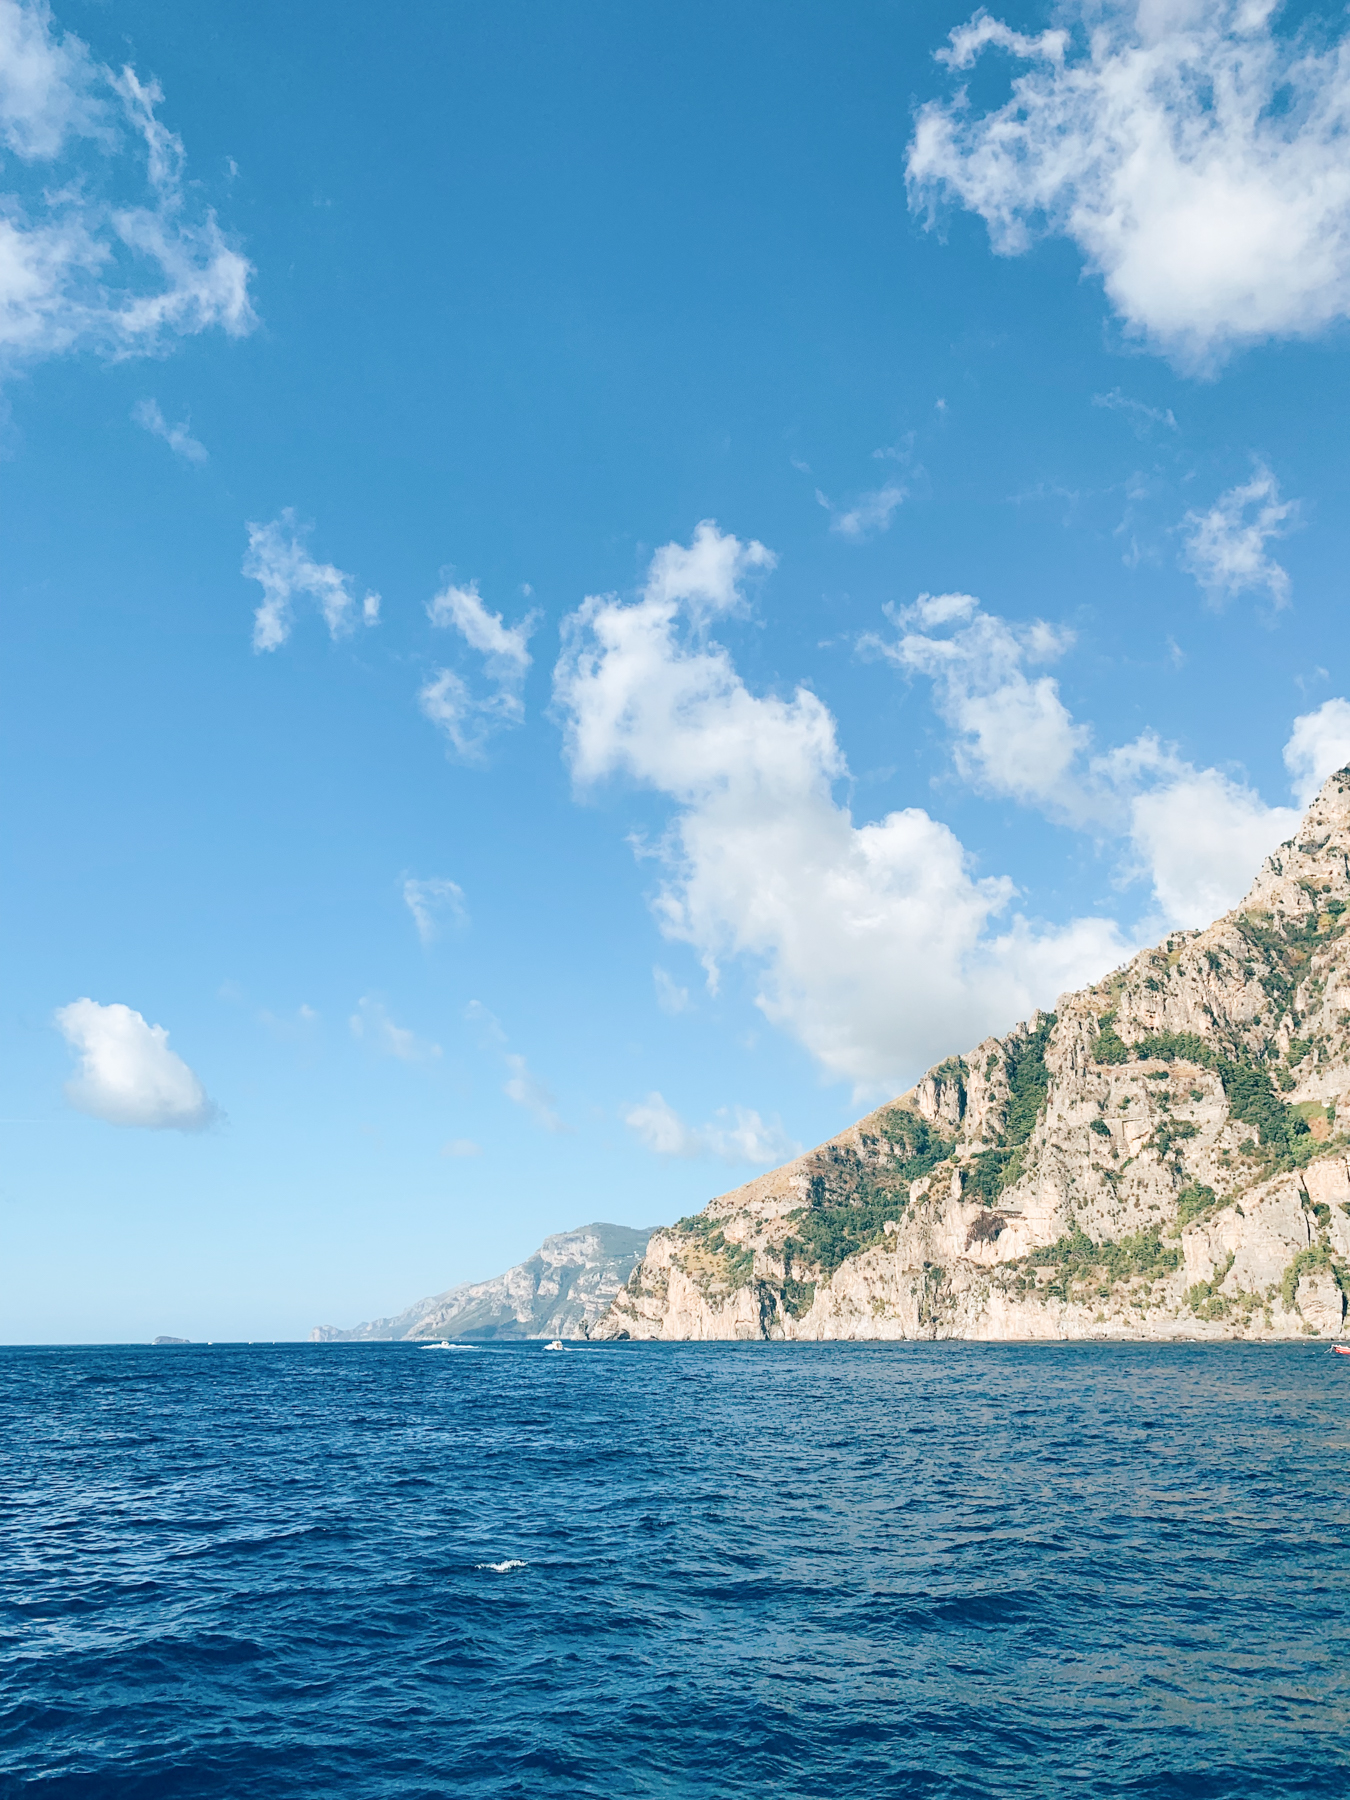 Views from the ferry coming into Positano